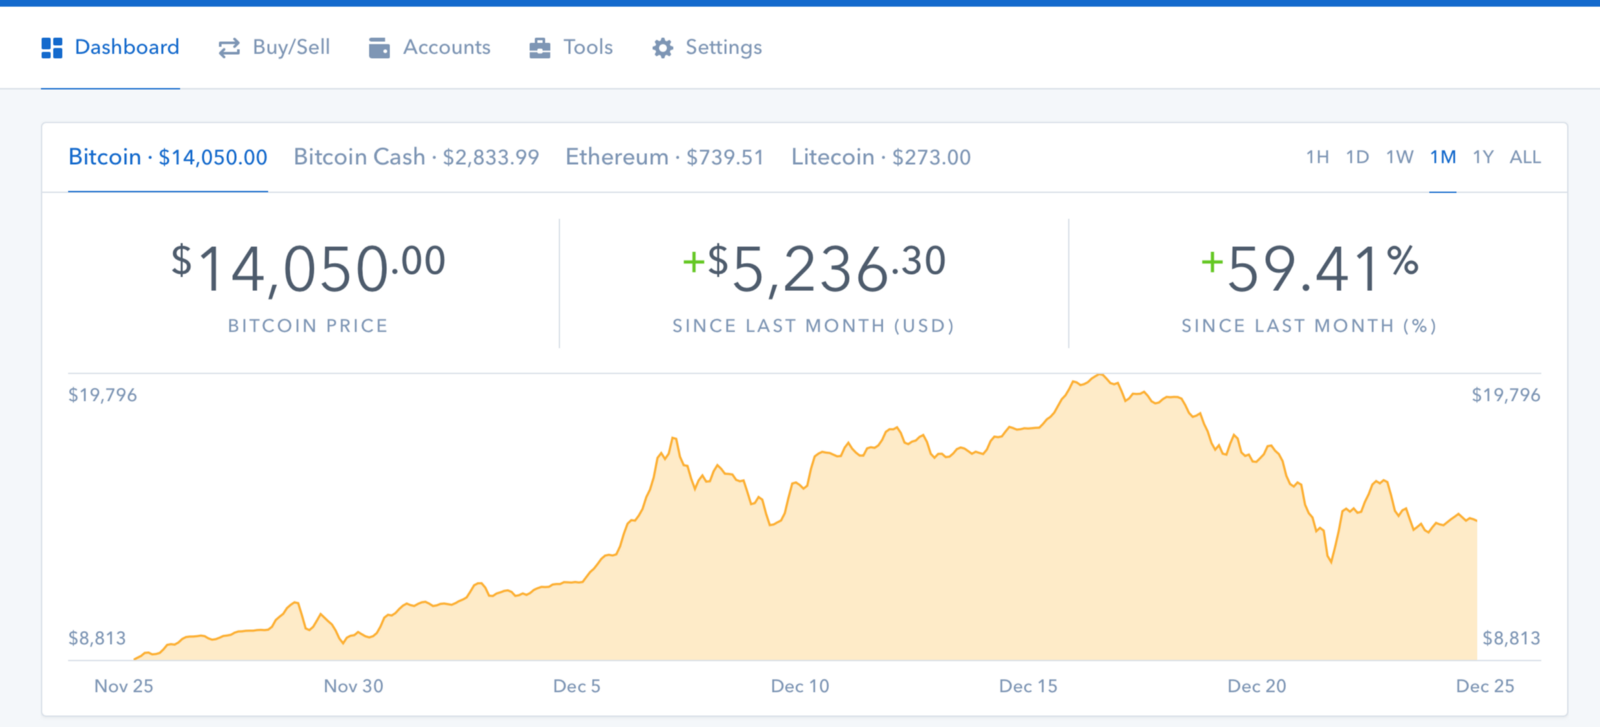 Ethereum worth investing in